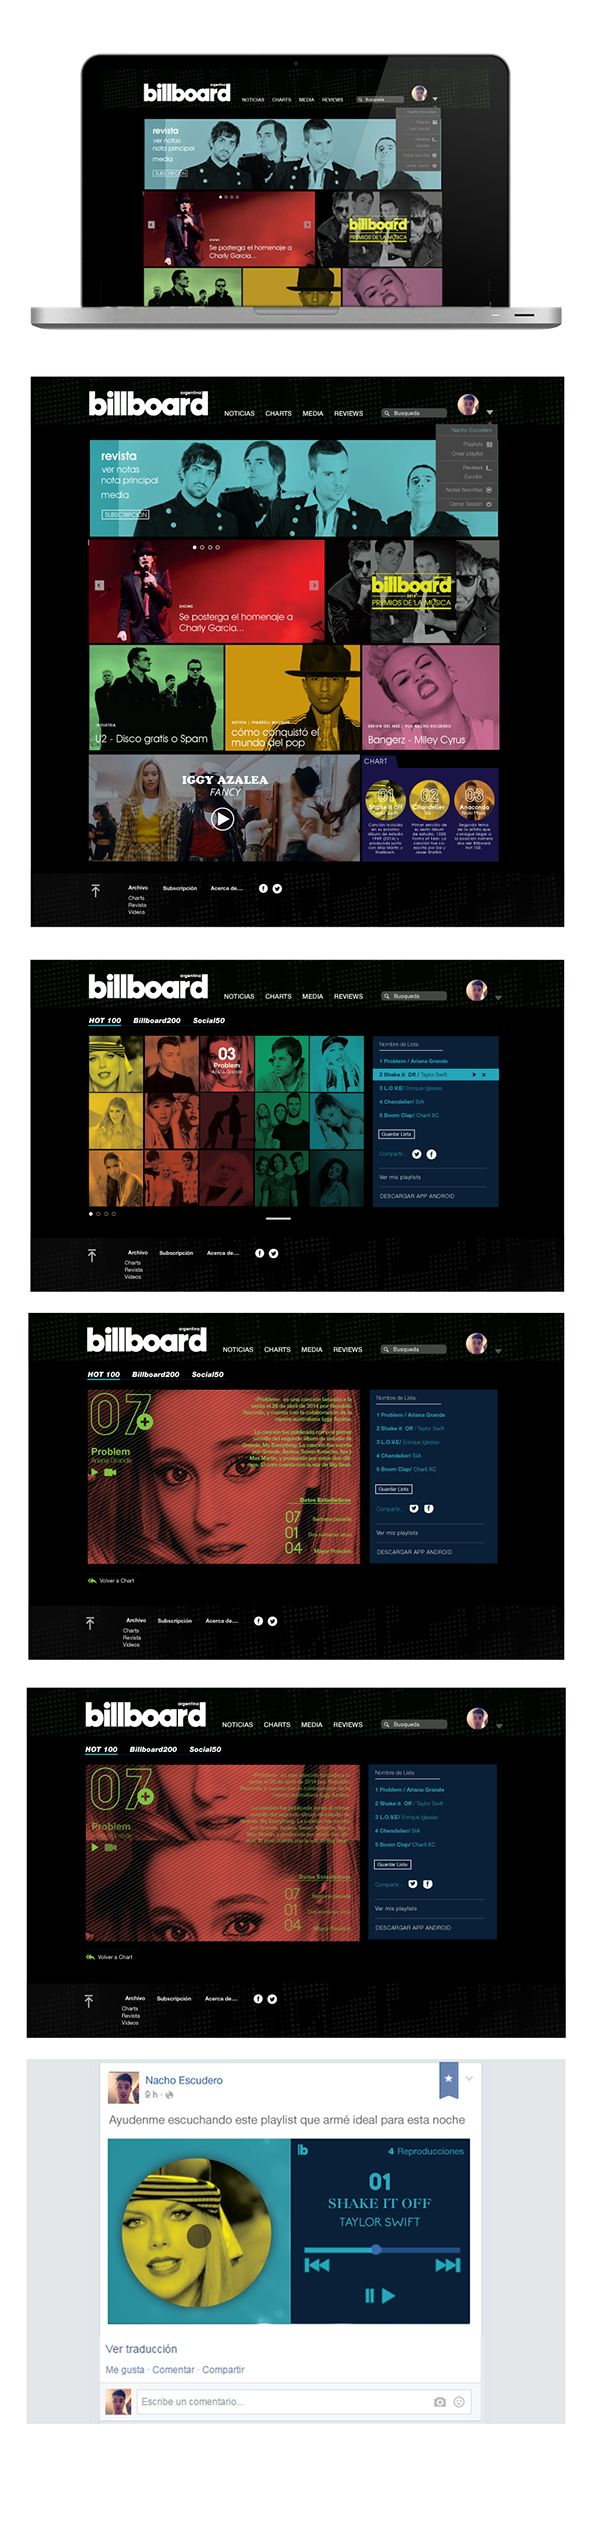 Billboard Arg - Web on Behance